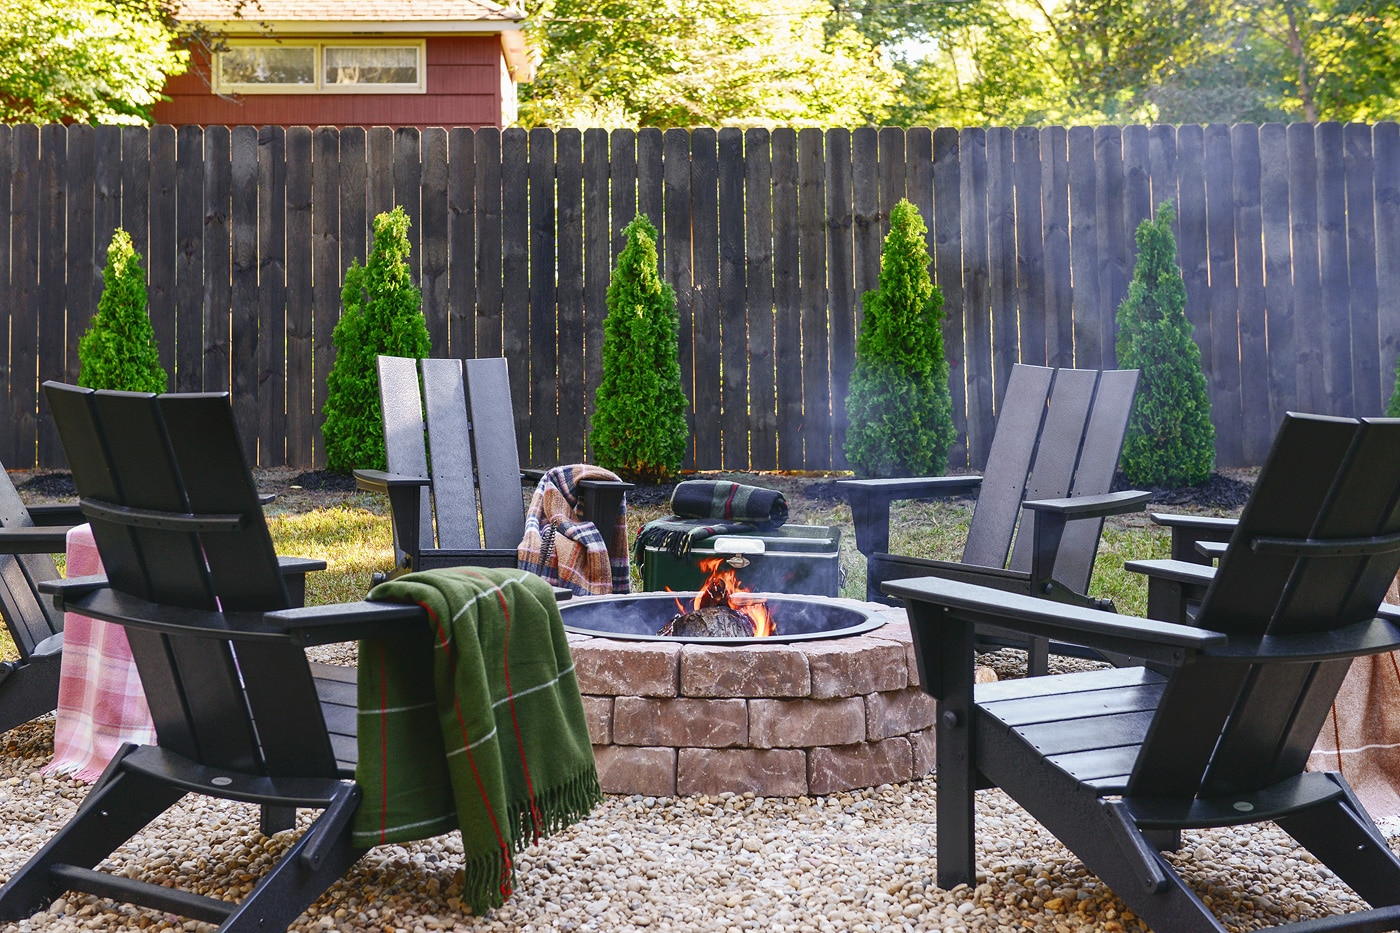 How To Make A Fire Pit Diy Via Yellow Brick